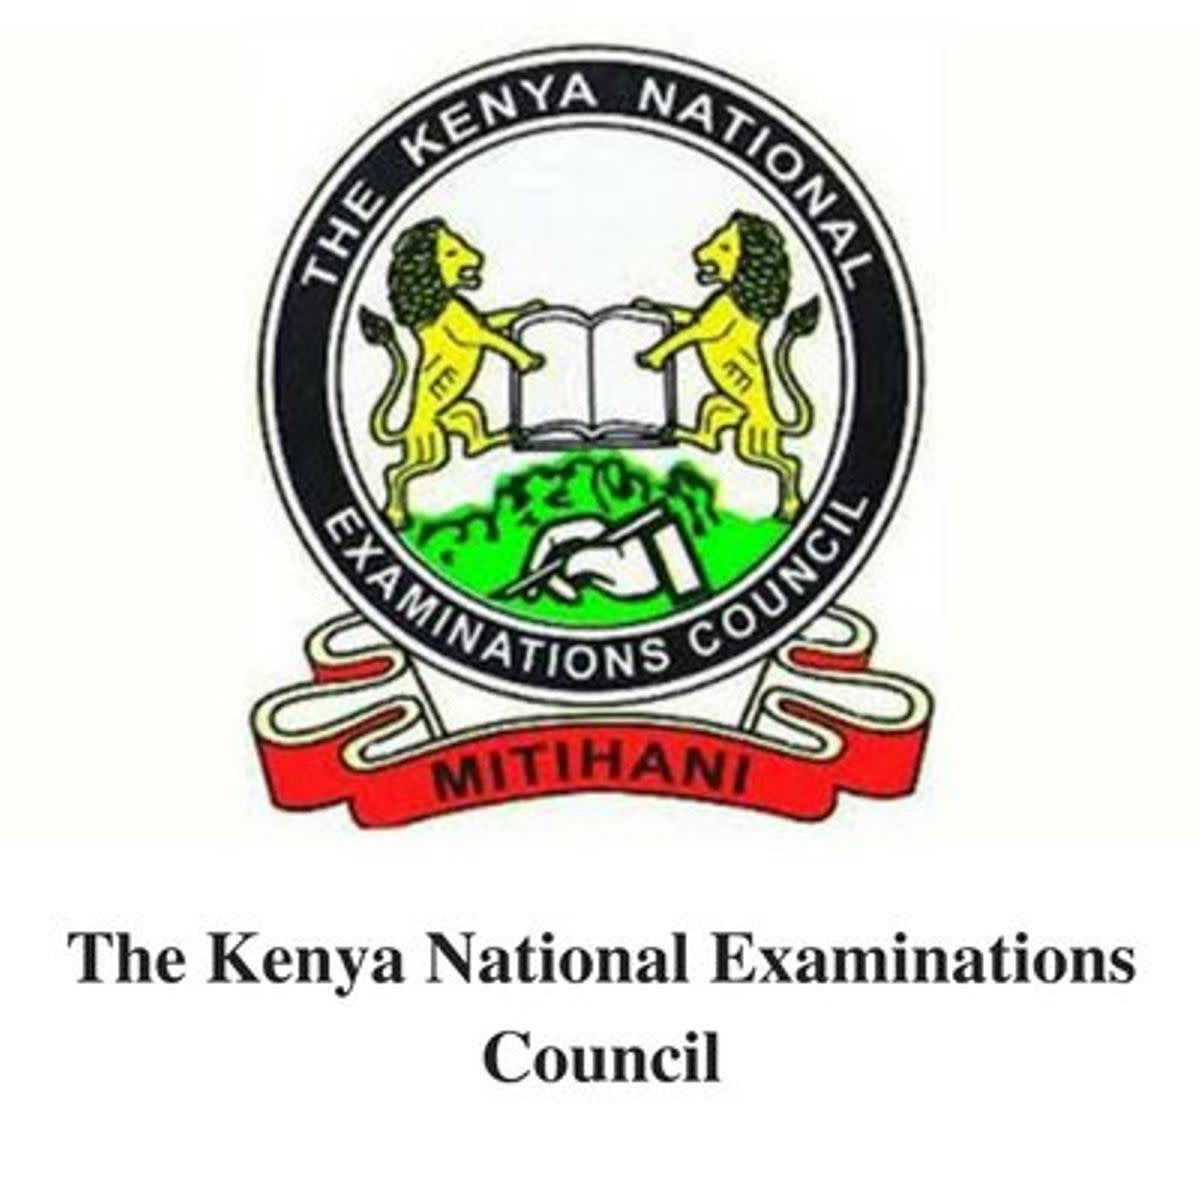 Mitihani House Location and How to Replace Lost Kcse and Kcpe Certificates